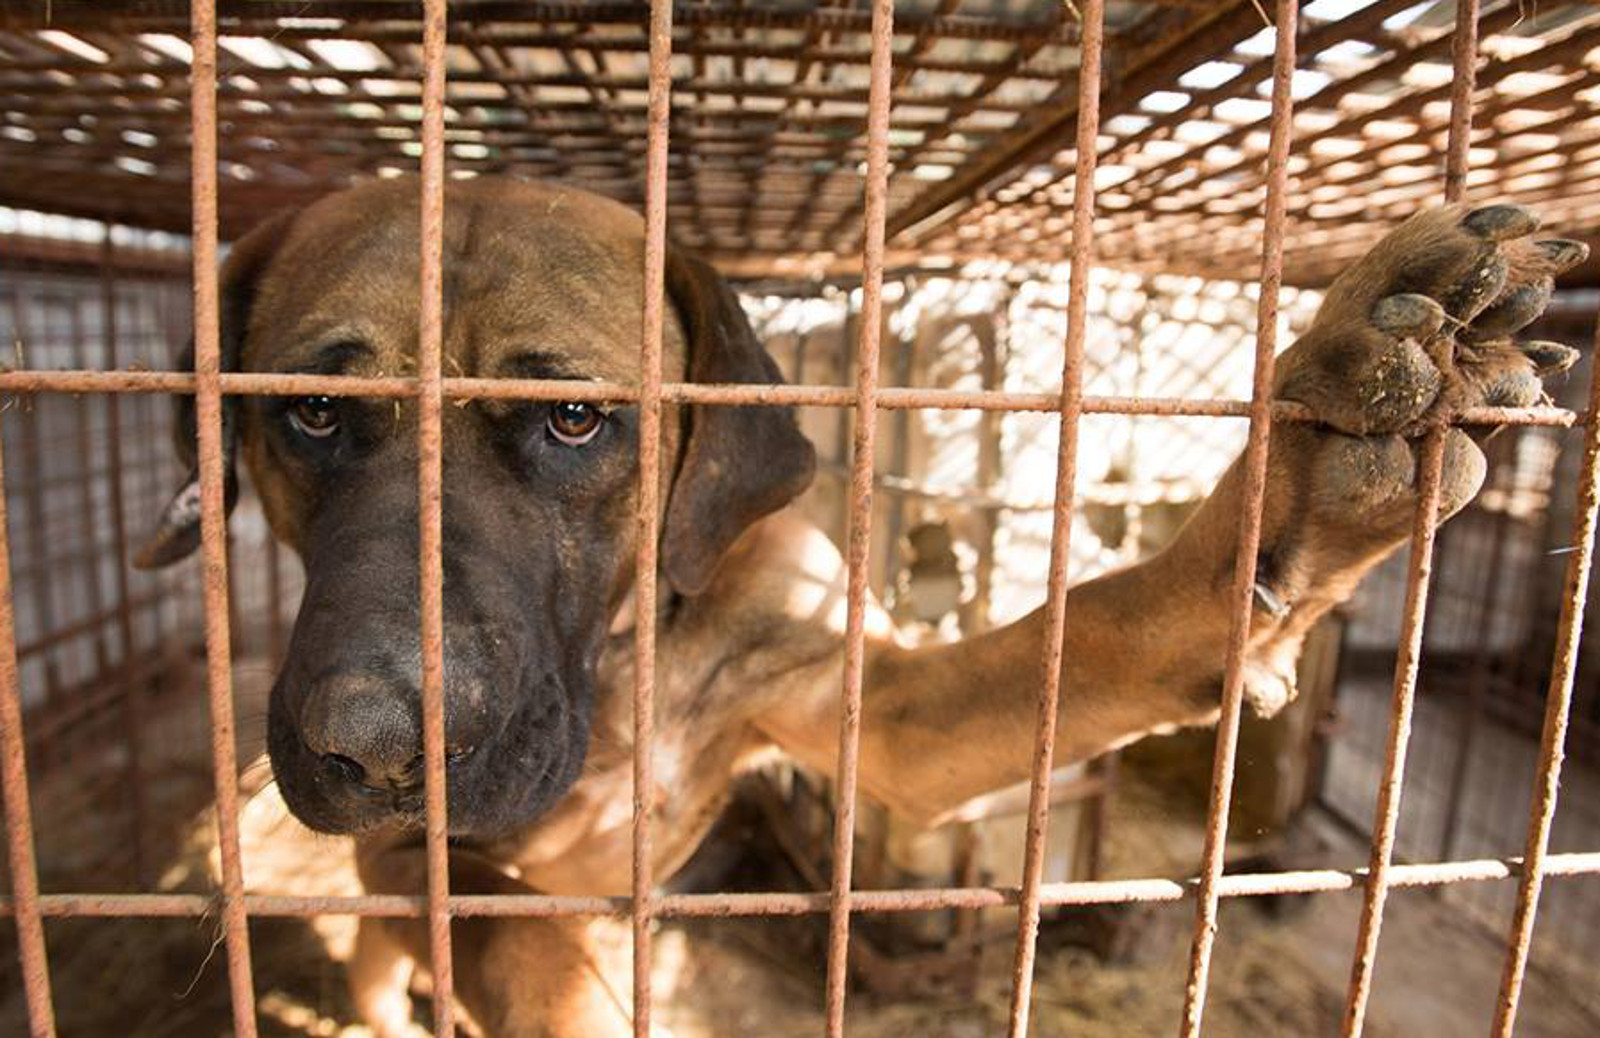 Heartbreaking Photo of Dog in Yulin Meat Market Will Inspire You to See Animals Differently